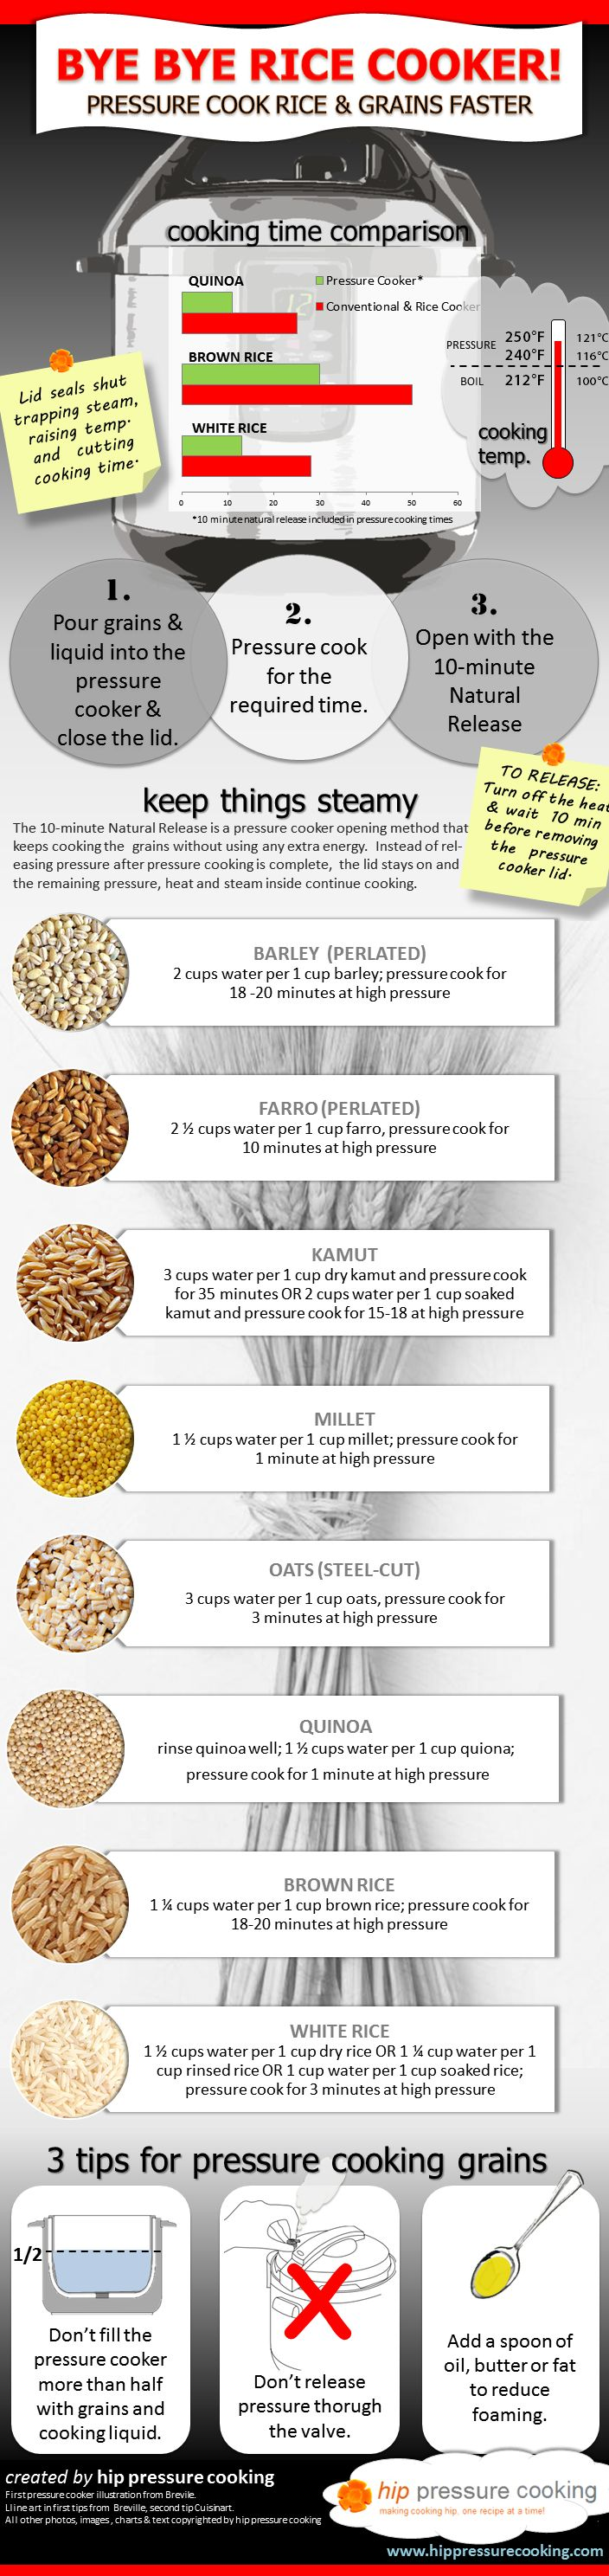 Infographic: Bye Bye Rice Cooker, pressure cook rice grains faster with pressure!